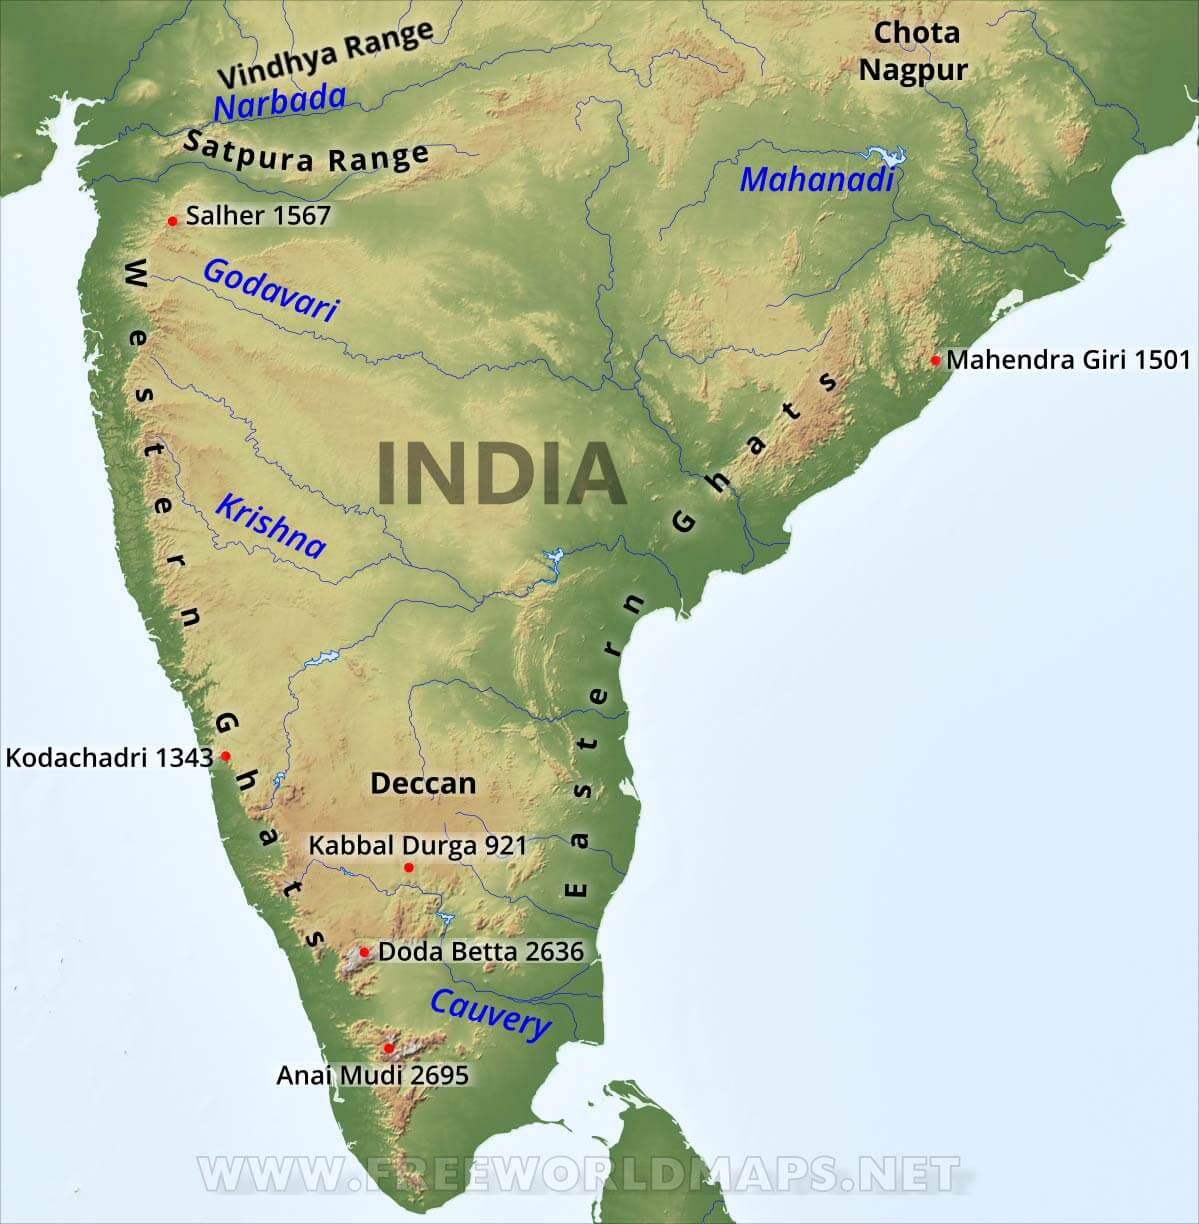 India Physical Map on jharkhand india, varanasi india, world map india, north india, nashik india, leader of india, states of india, political world map, map showing india, geography of india, northern region of india, atlas of india, major rivers of india, maps of only india, provinces of india, where's india, political map kerala, political map government, bangalore india, maps for india,